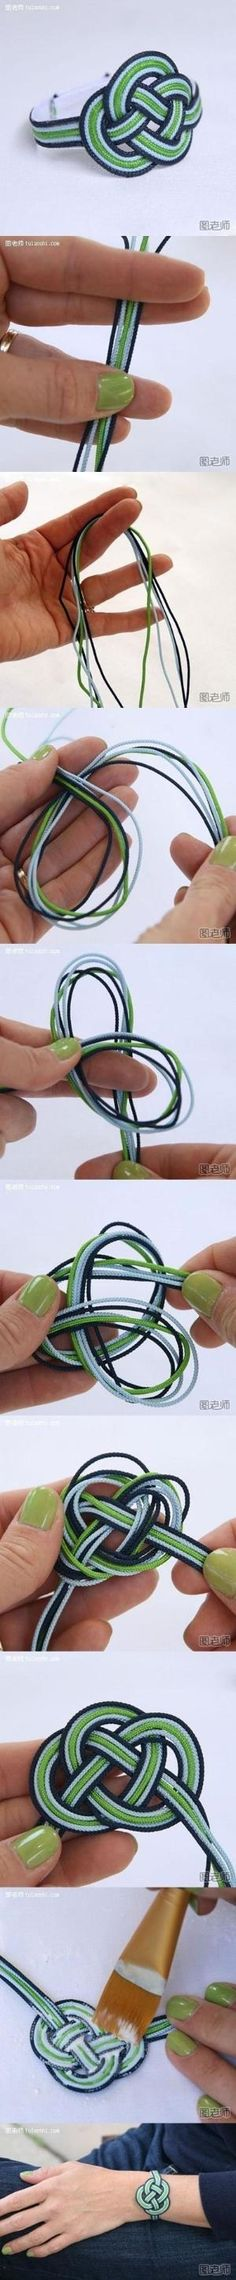 How to make love bracelet step by step DIY instructions / How To Instructions: by crazy sheep